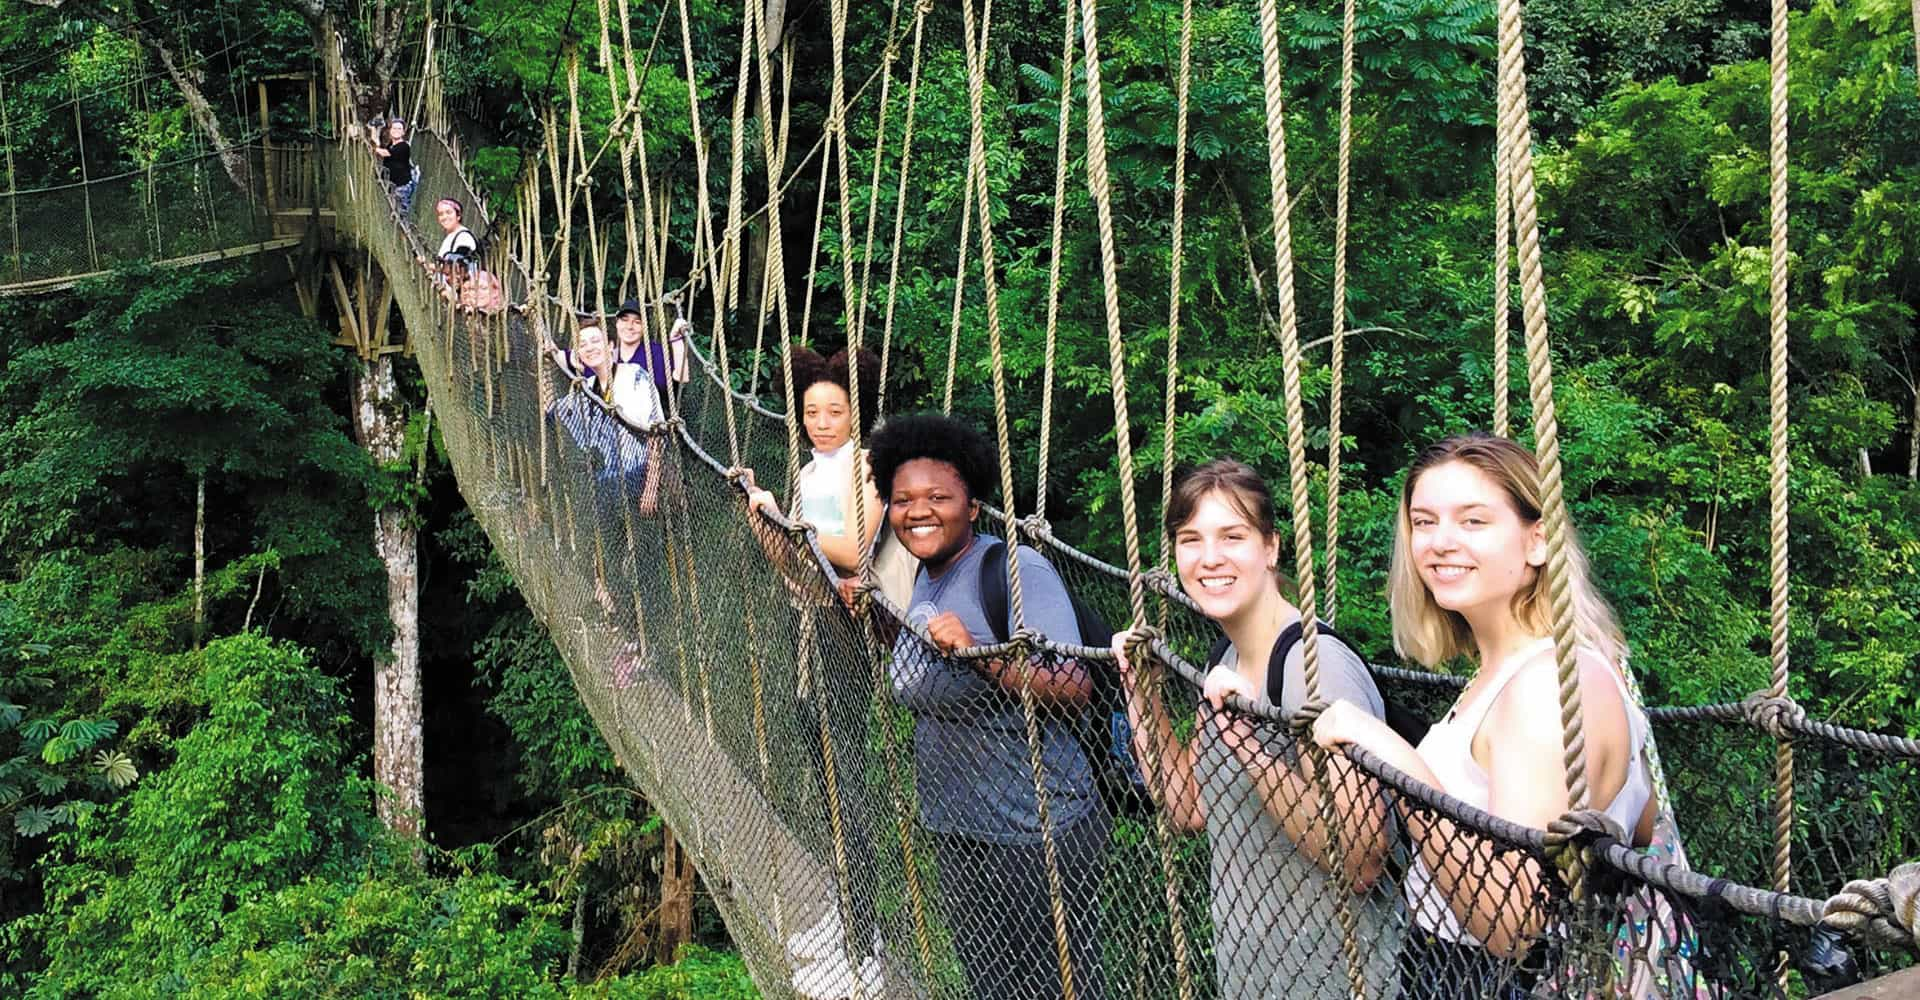 A row of students on a rope bridge.